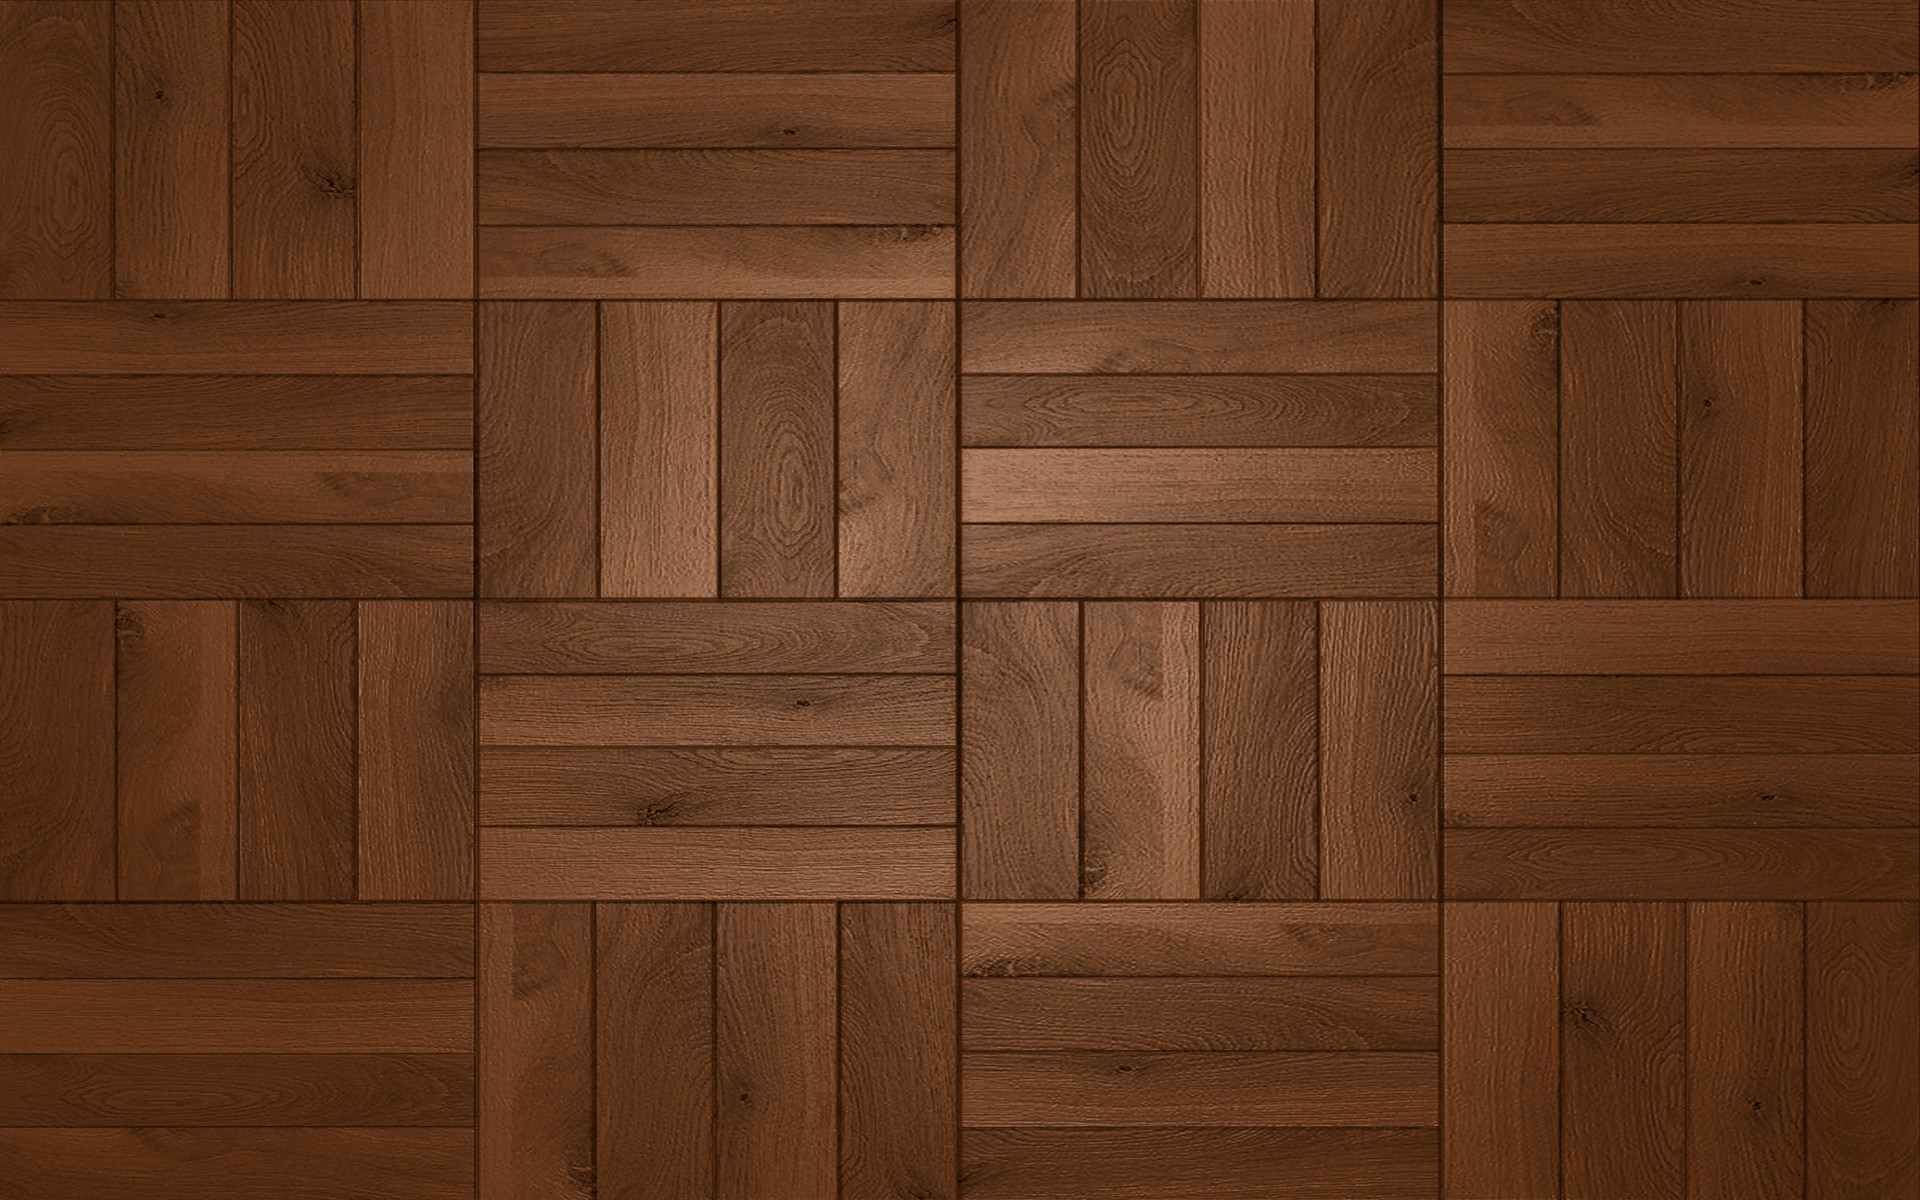 1920x1200 Pattern - Wood Floor Wallpaper